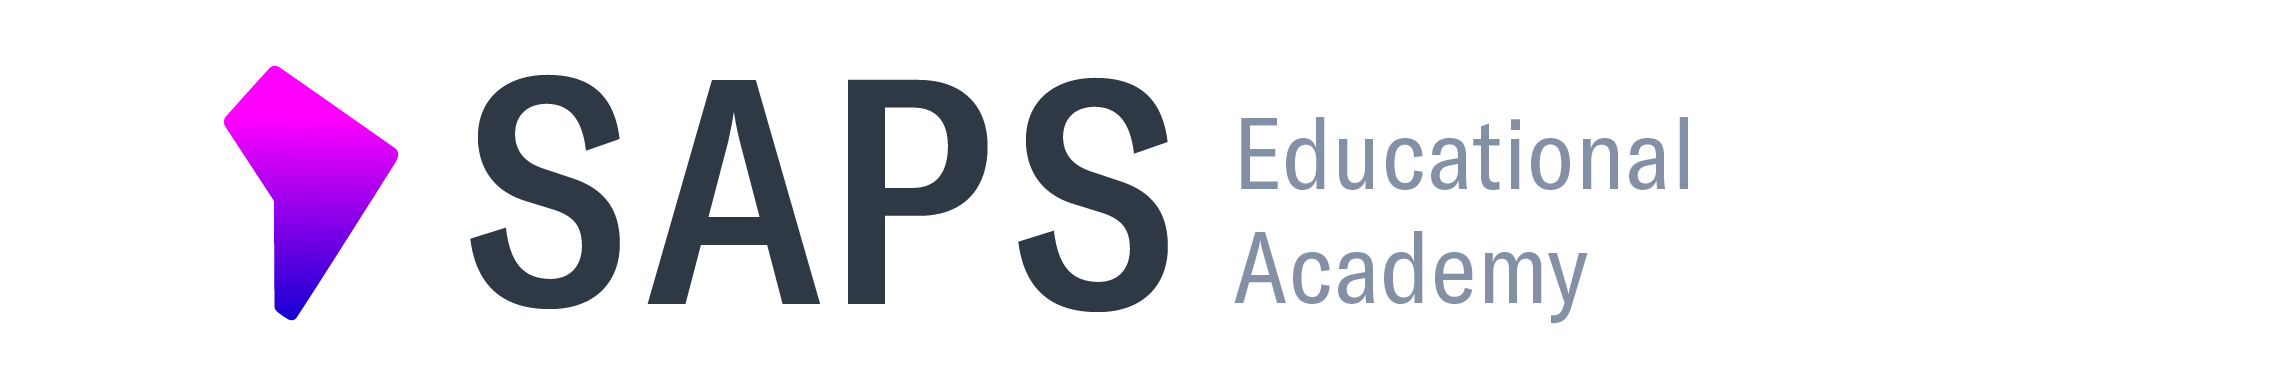 SAPS Educational Academy